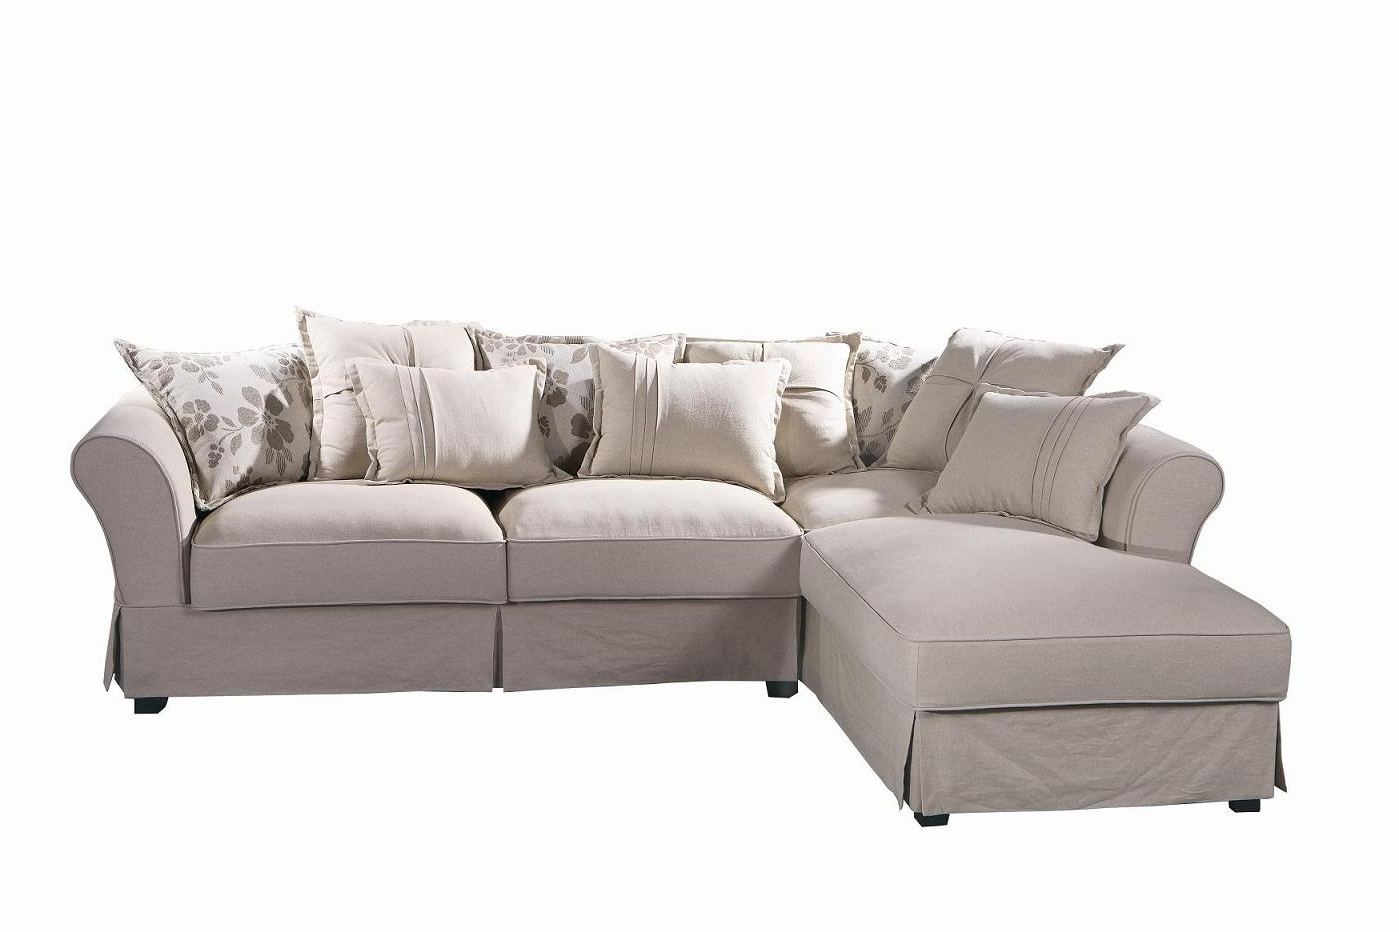 Nashville Sectional Sofas Intended For Famous Low Price Sectional Sofas – Hotelsbacau (View 8 of 15)